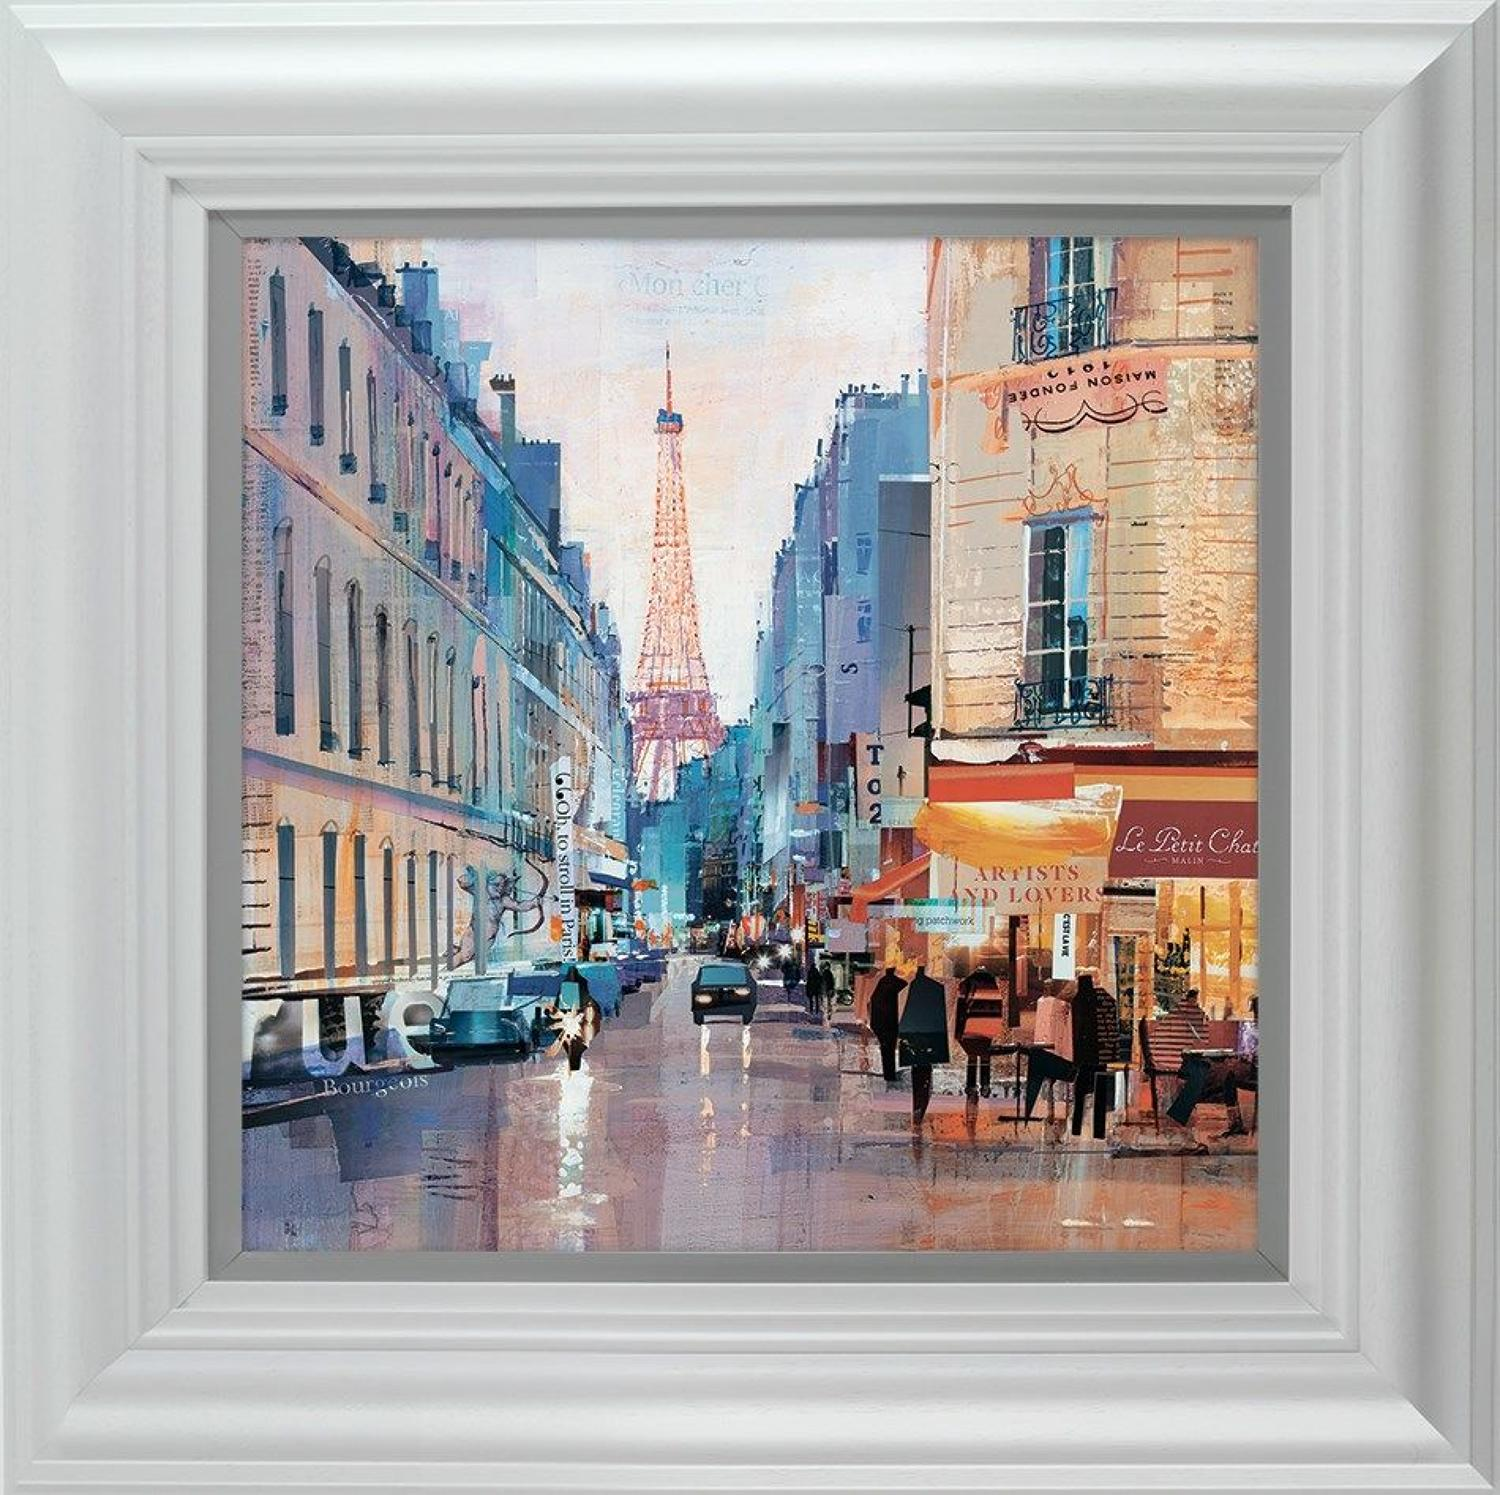 Love Rue (Paris) by Tom Butler Framed Art Print